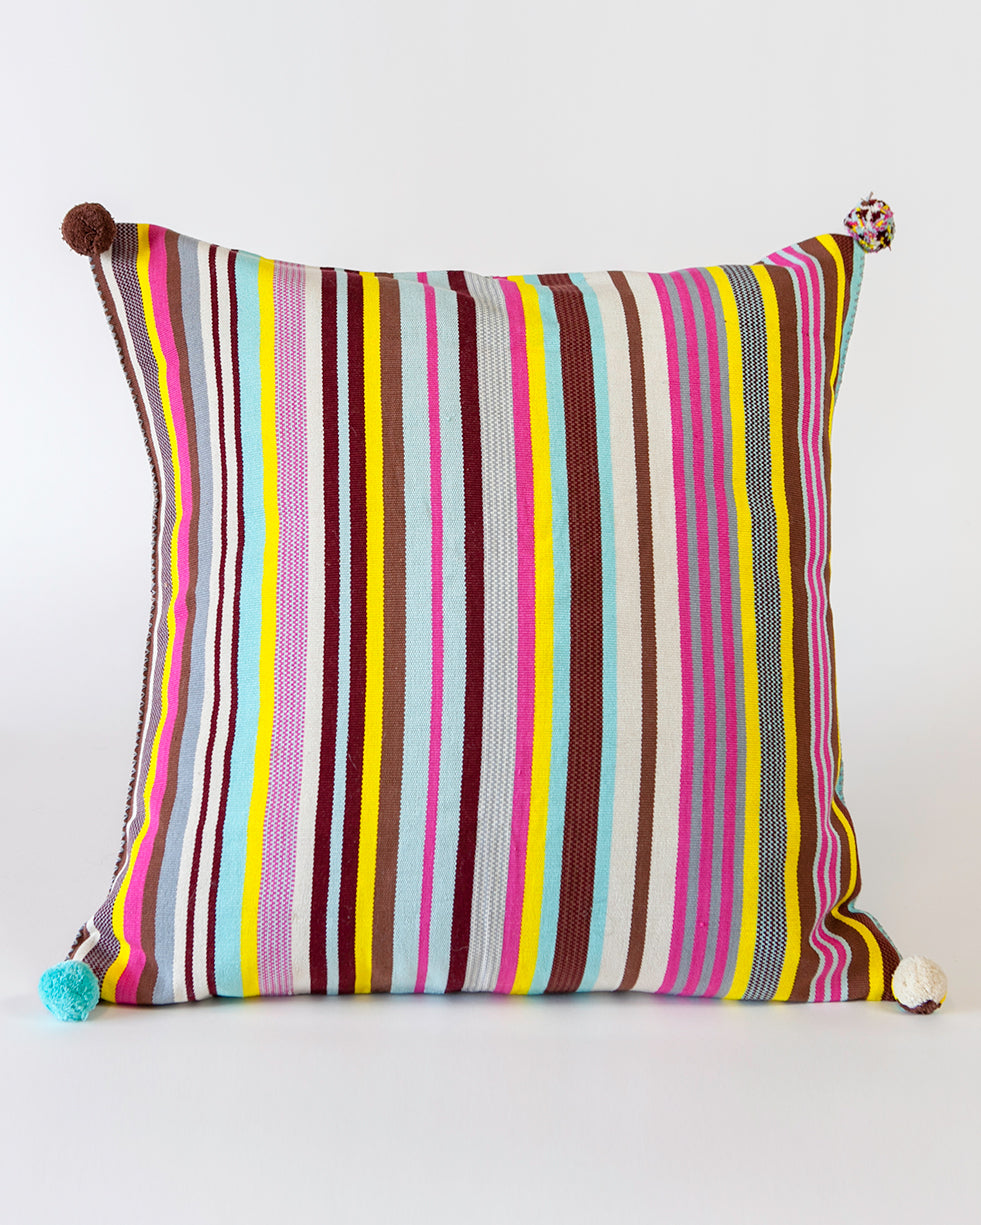 Handwoven cotton pillow pink colored stripes with poms